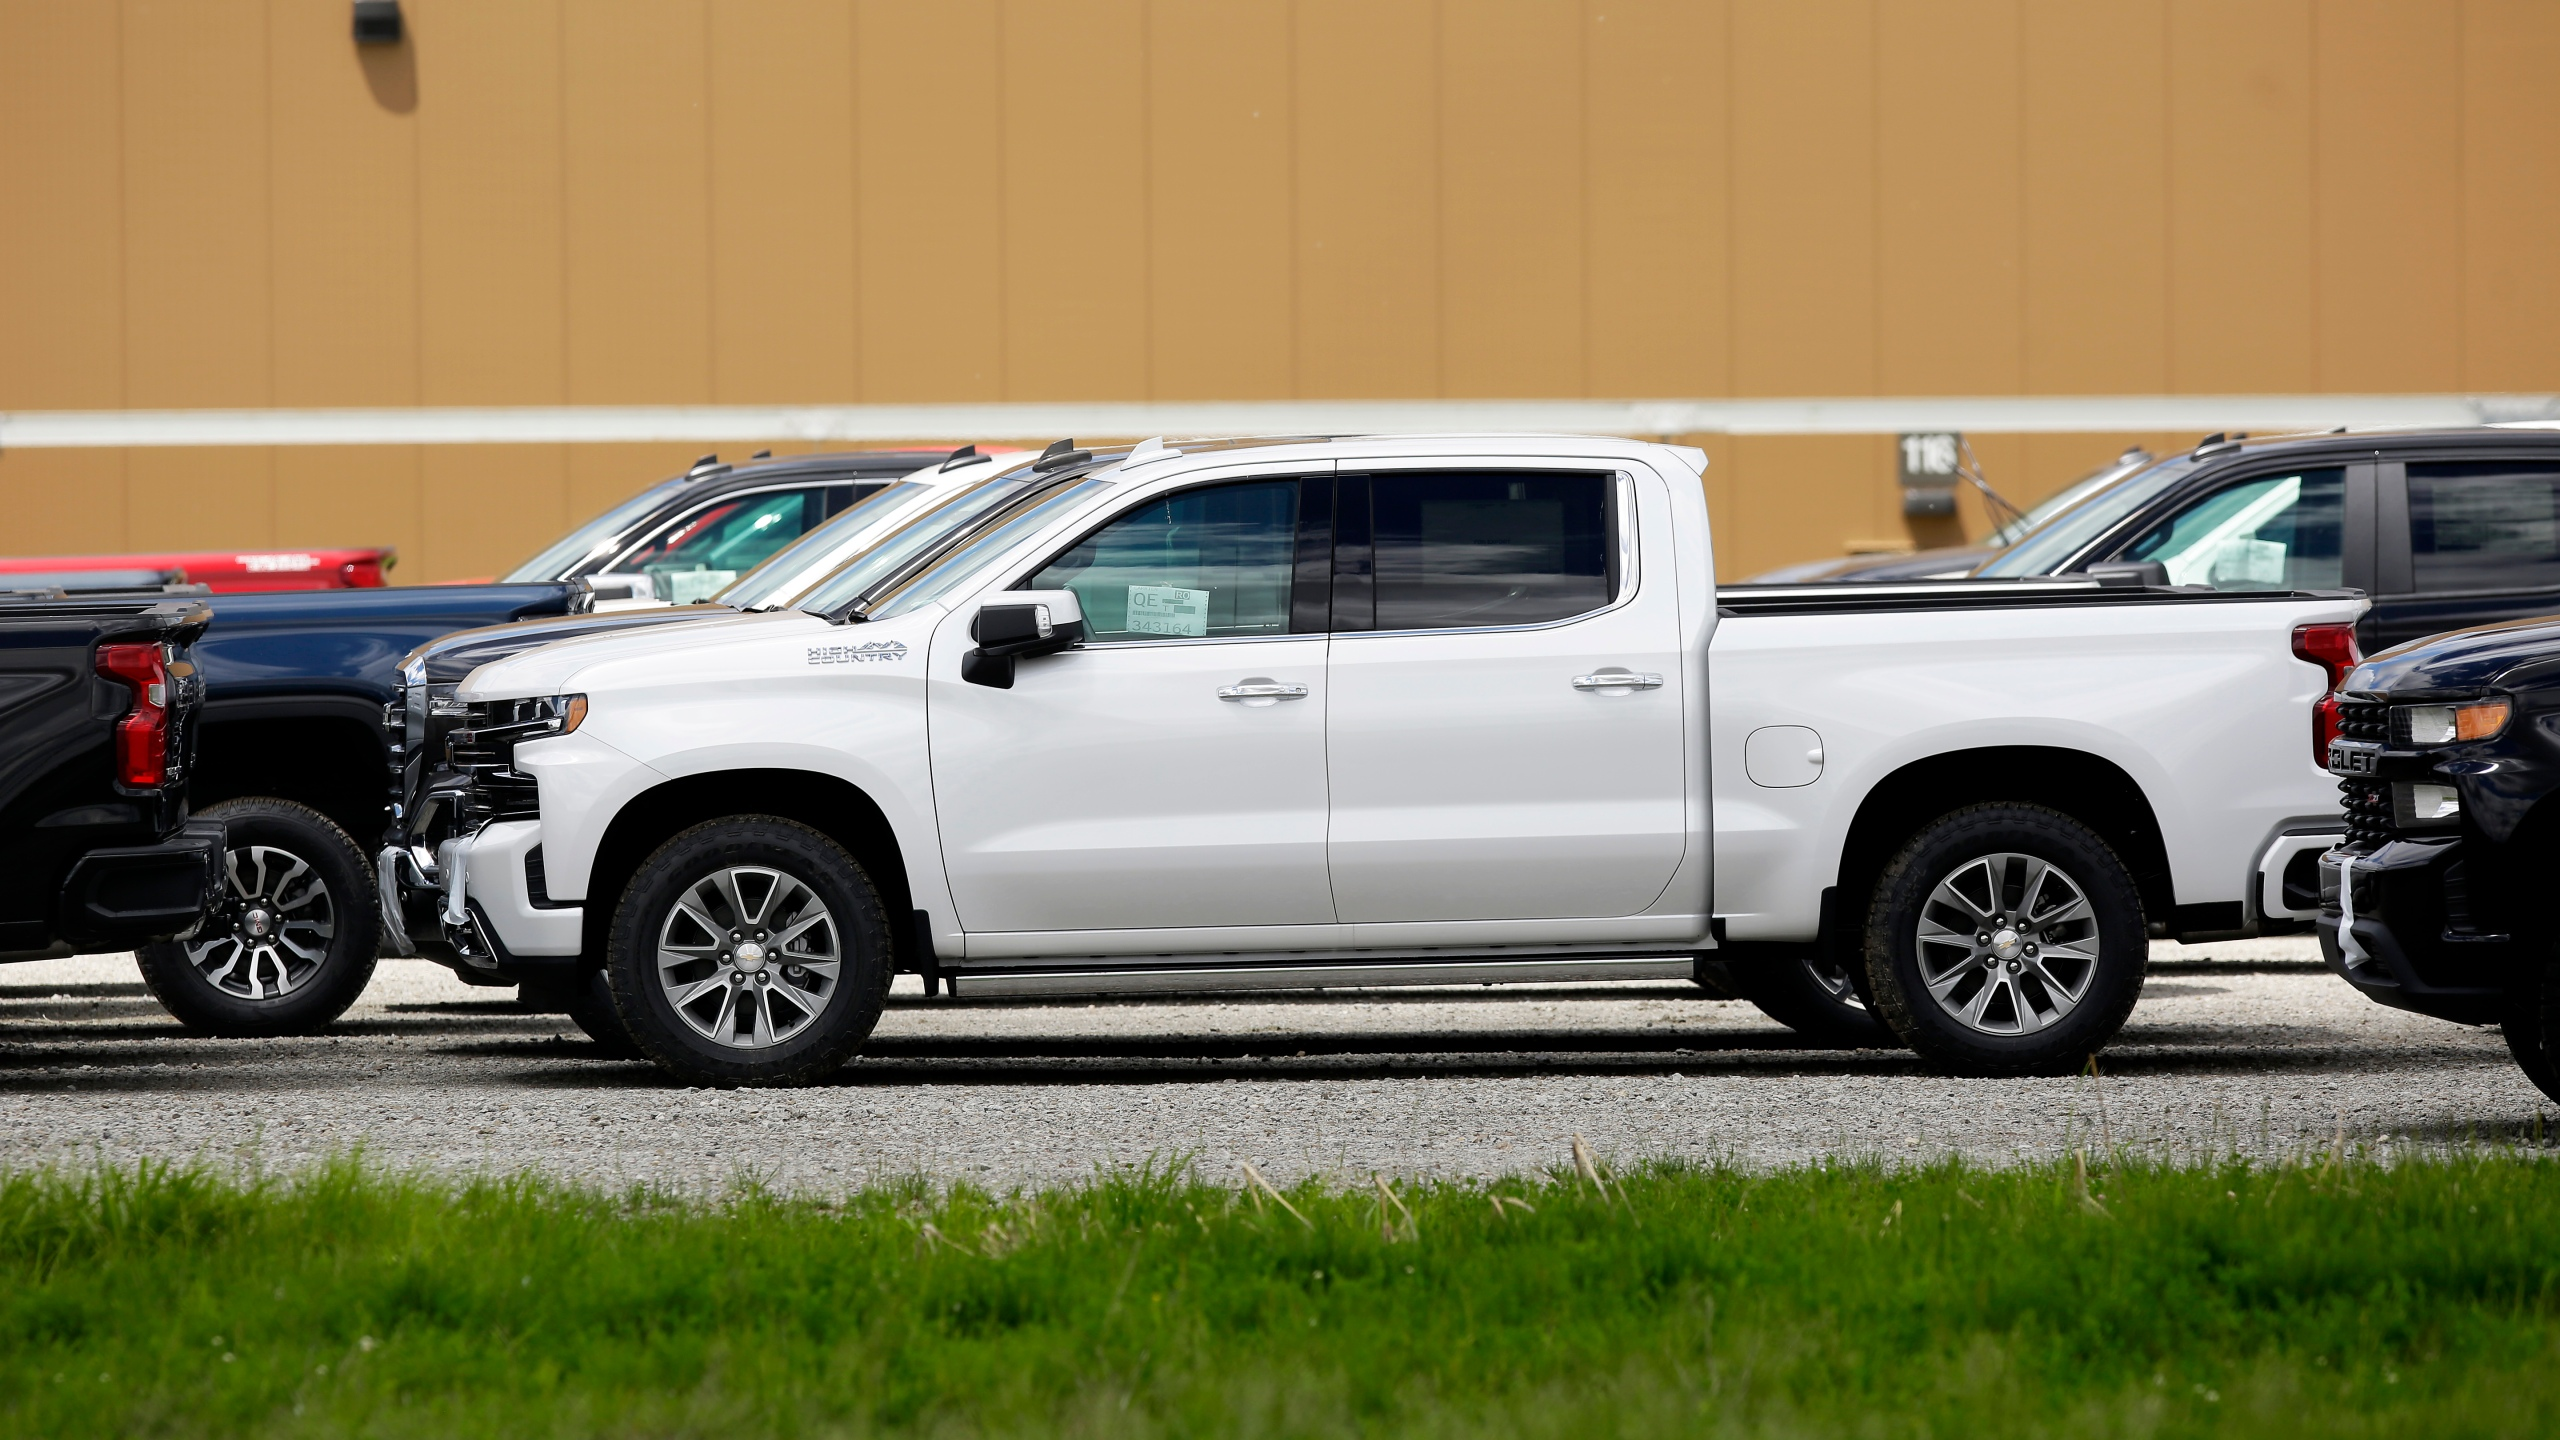 Chevrolet pickup trucks sit in a parking lot outside the GM Fort Wayne Assembly Plant on May 30, 2019 in Roanoke, Indiana. (Credit: Joshua Lott/Getty Images)